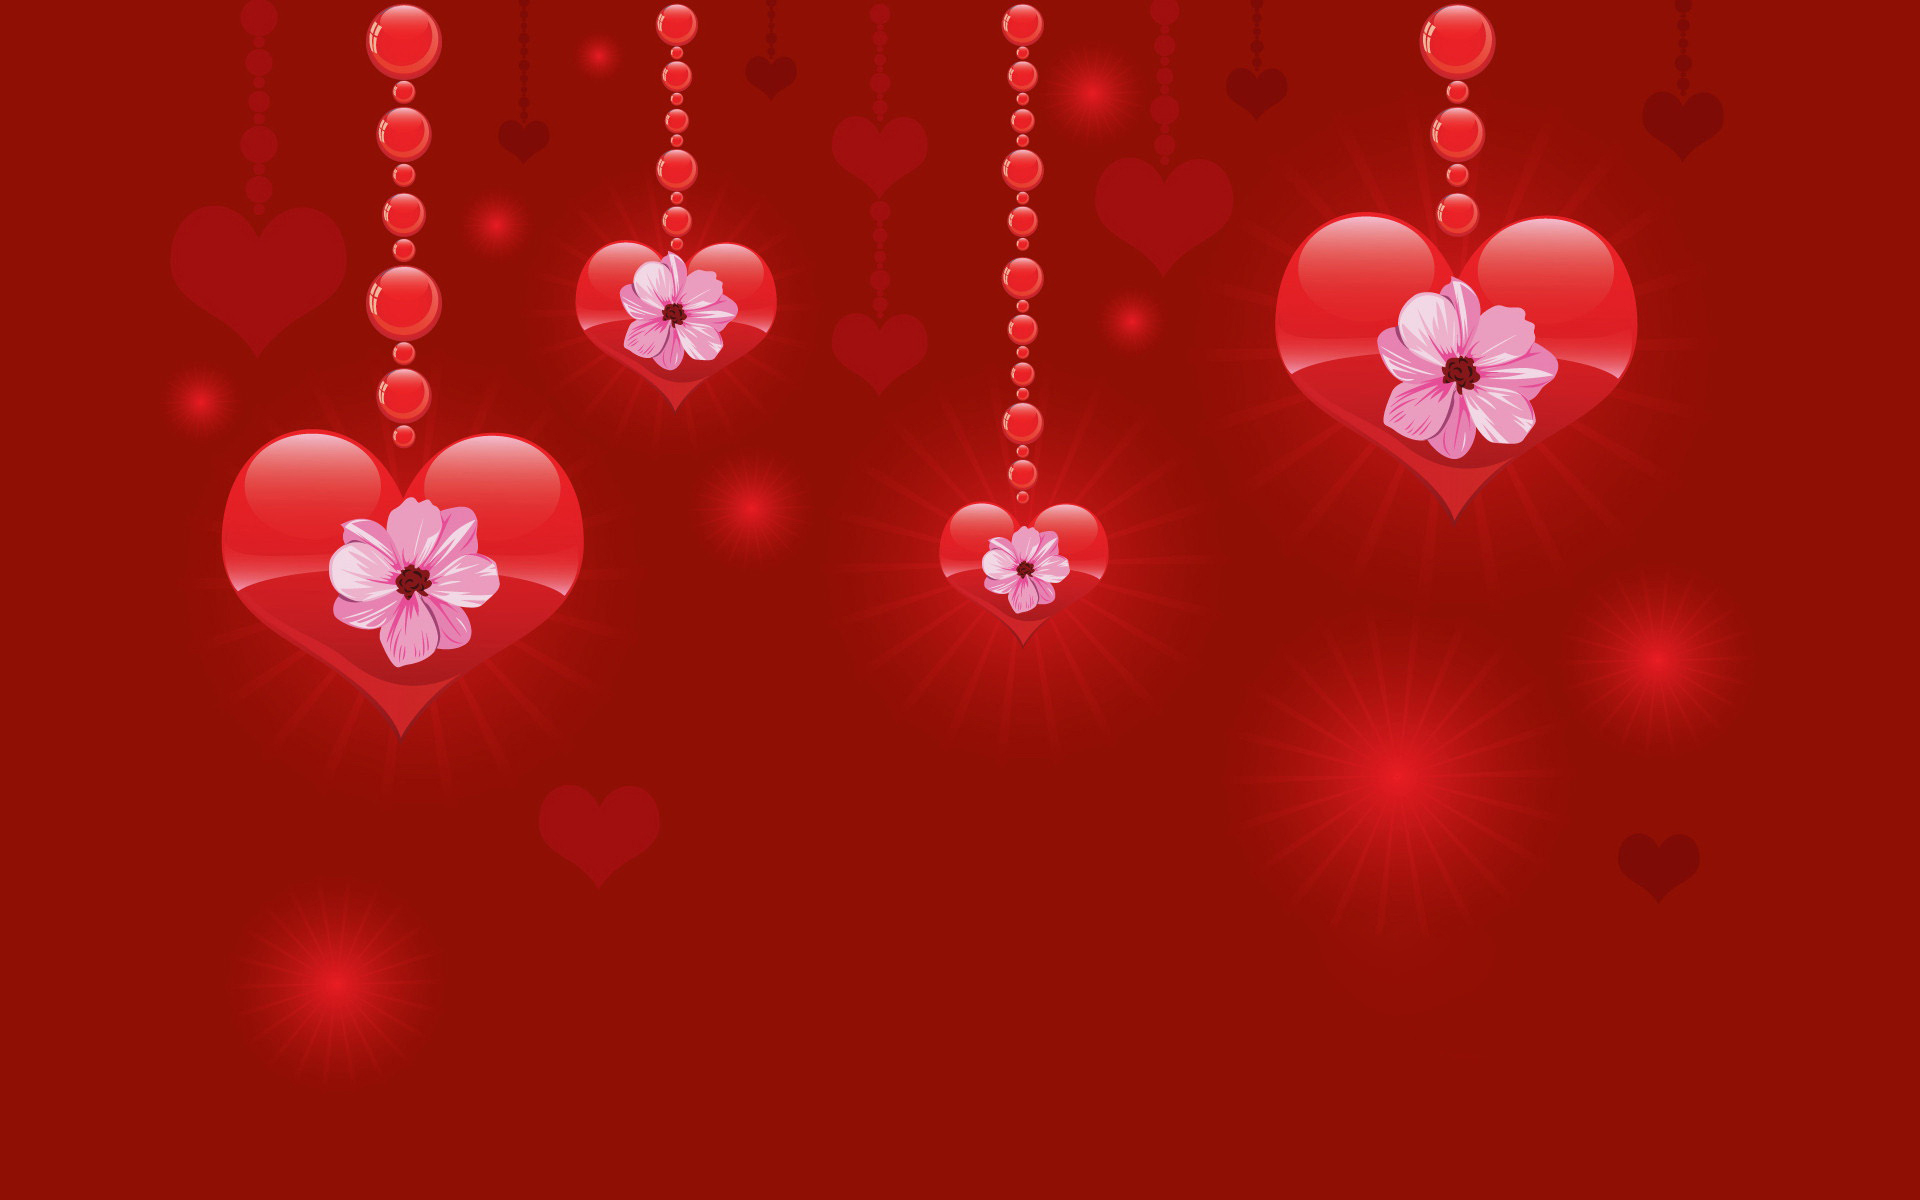 Valentines Day Wallpapers   Happy Birthday Cake Images 1920x1200